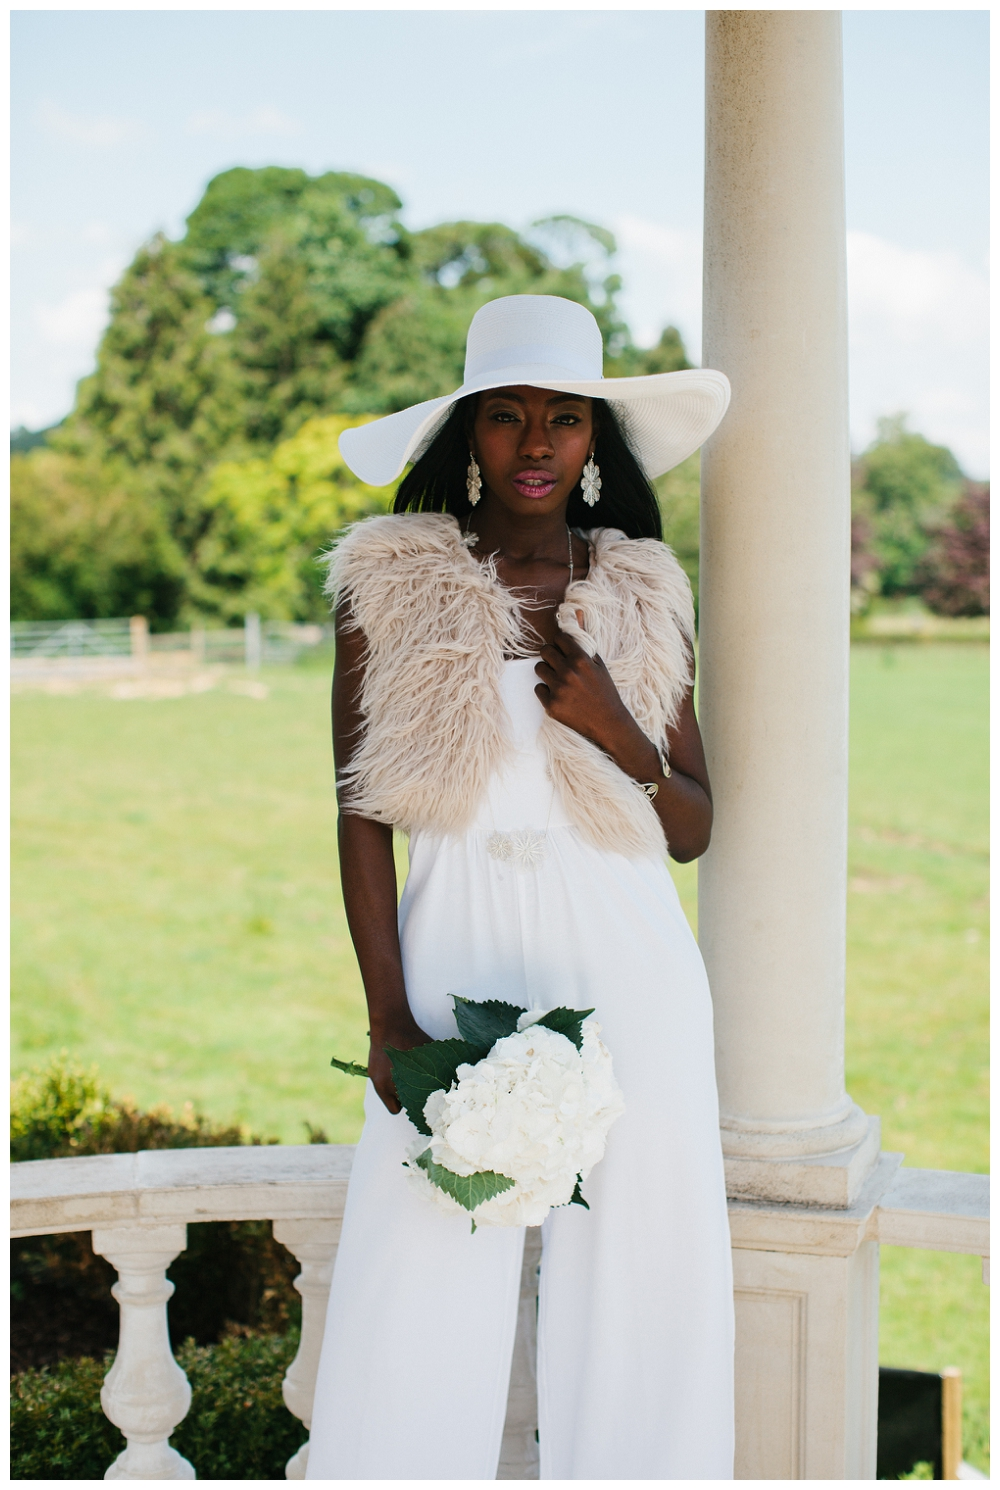 Style & on a budget! Jumpsuit by ASOS,jacket from House of Fraser and the hat is Debenhams. Jewellery by Arabel Lebrusan. Styled by Charlotte Munro, photography Alexandra Jane.